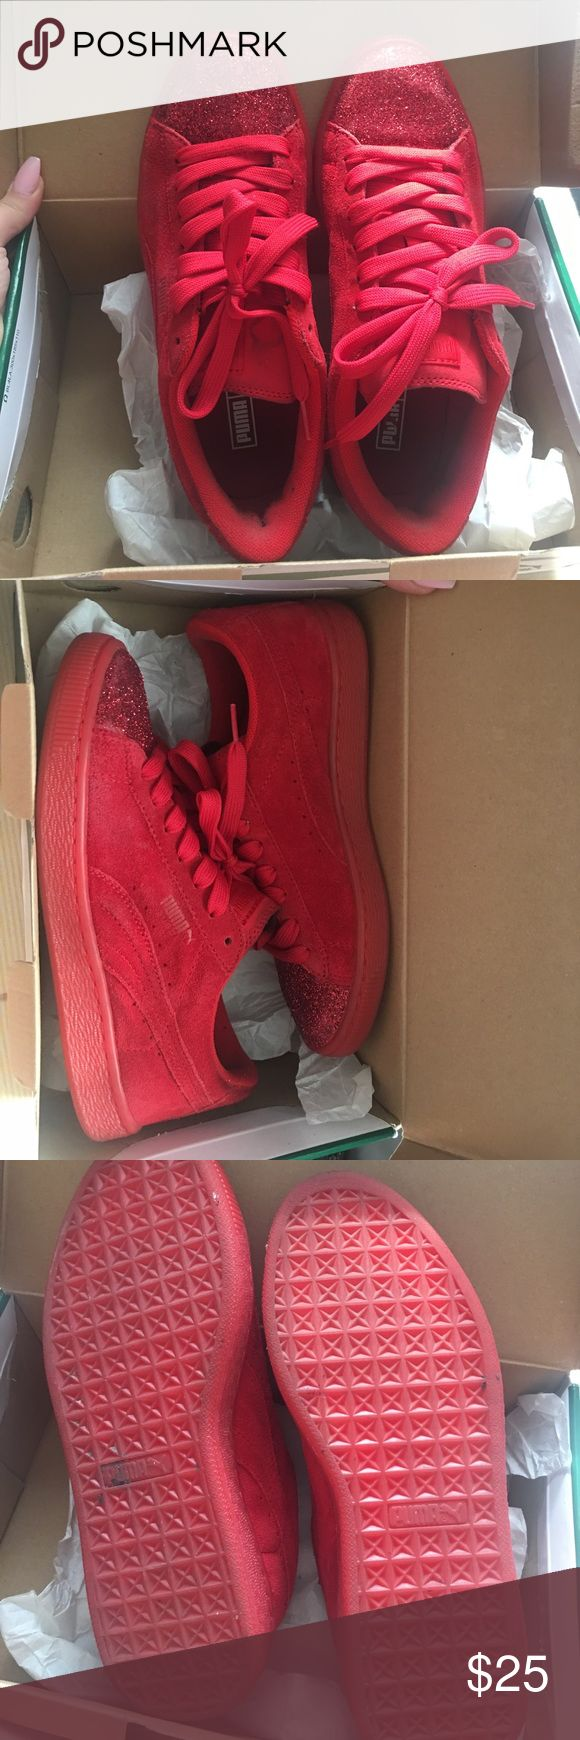 Glitter pumas Custom glitter red pumas worn 3 times size 5.5 Puma Shoes Sneakers